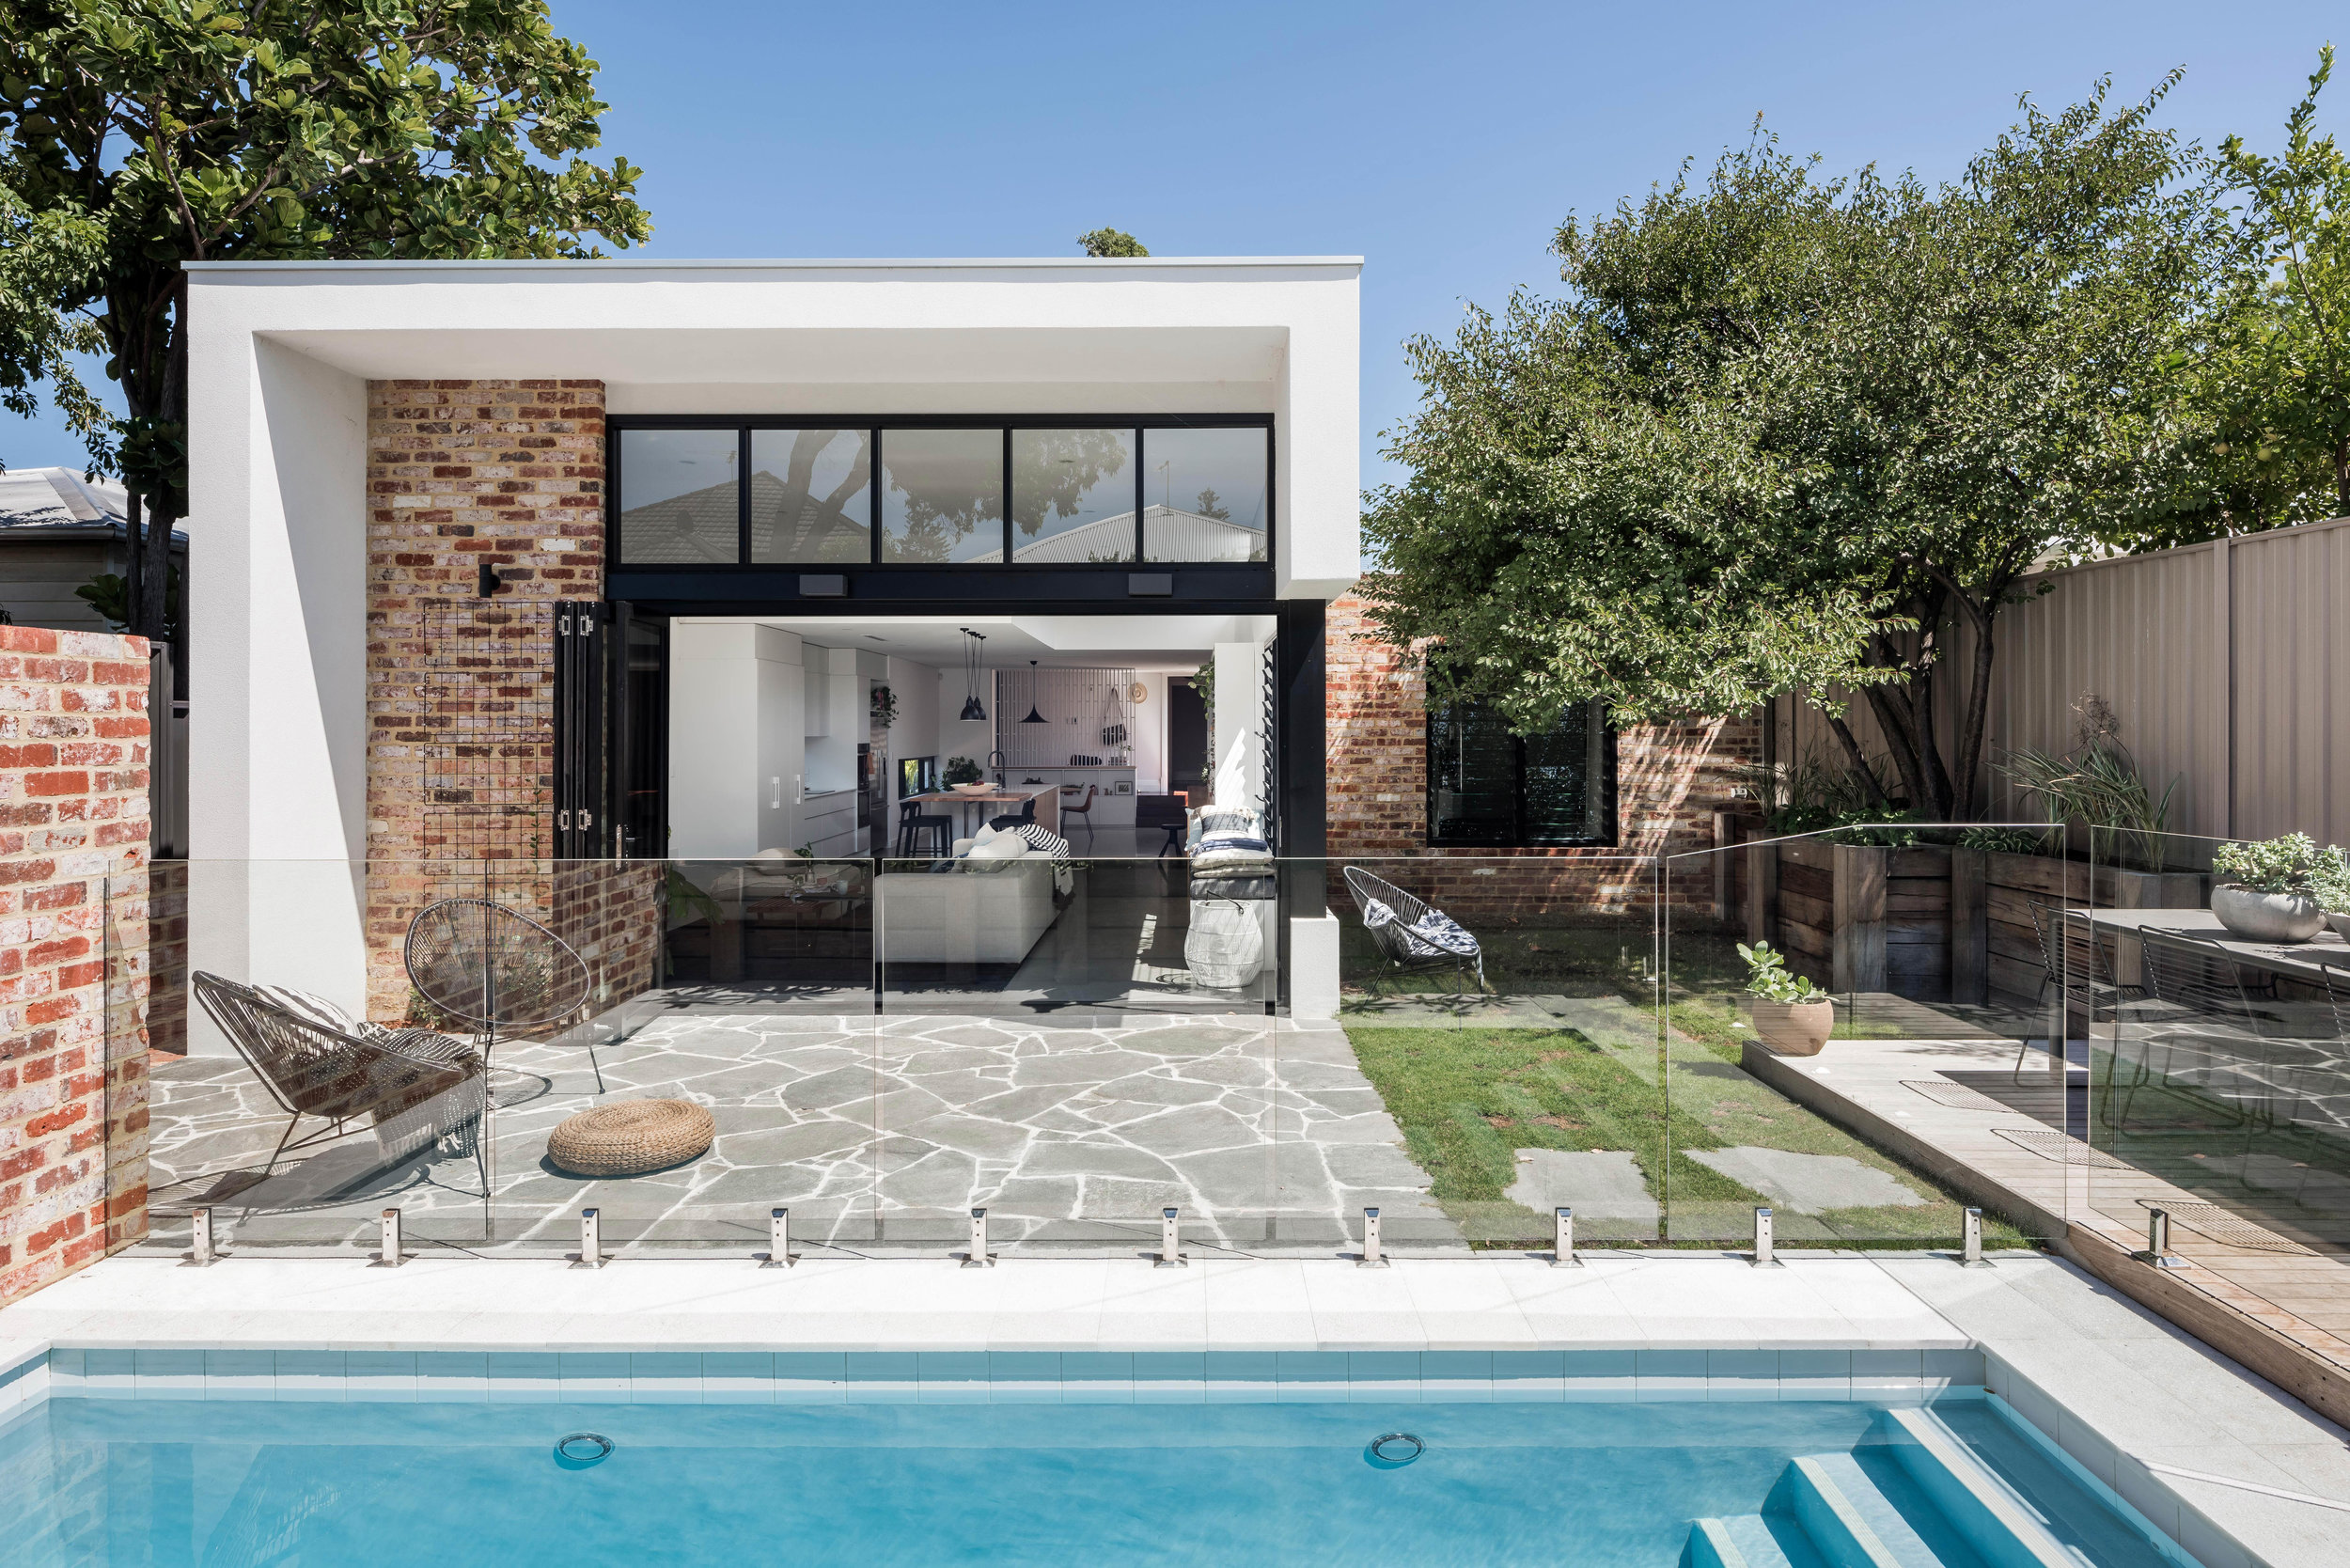 Mounsey House, Mt Hawthorn : Studio Atelier | Photography : Dion Robeson